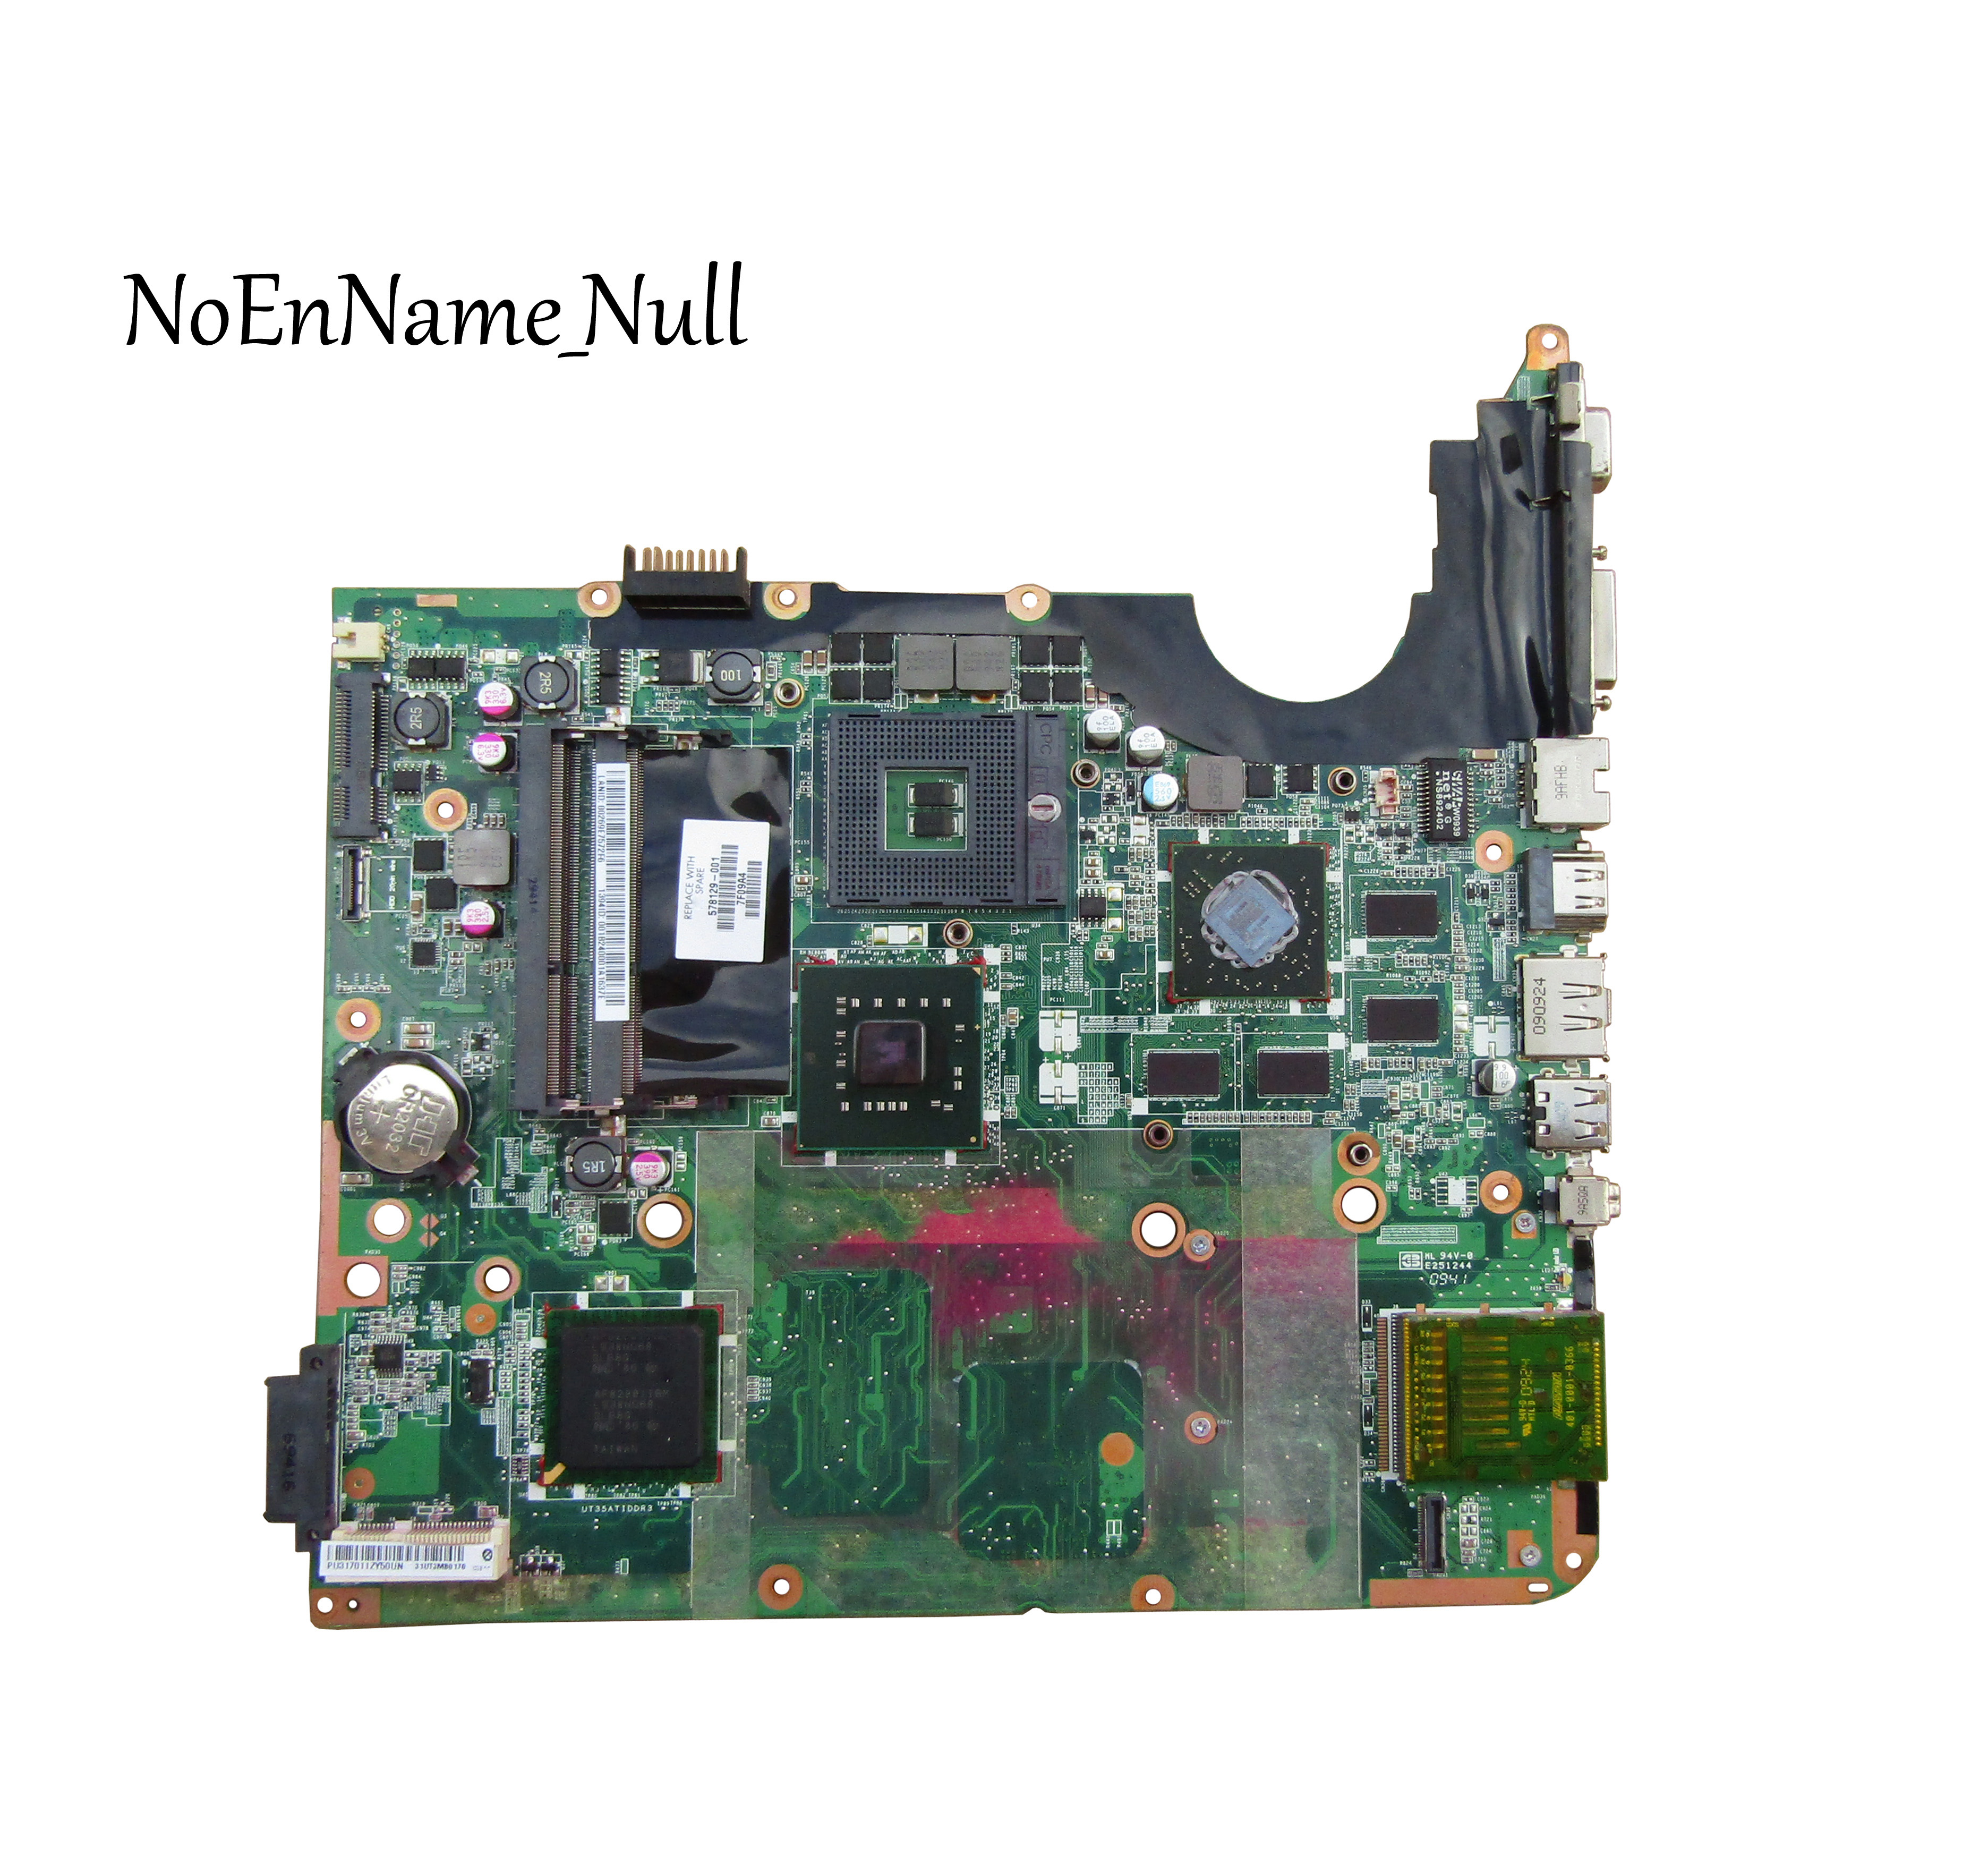 Free shipping ! 100% tested 578129-001 board for HP pavilion DV7-2000 DV7 DV7T laptop motherboardFree shipping ! 100% tested 578129-001 board for HP pavilion DV7-2000 DV7 DV7T laptop motherboard